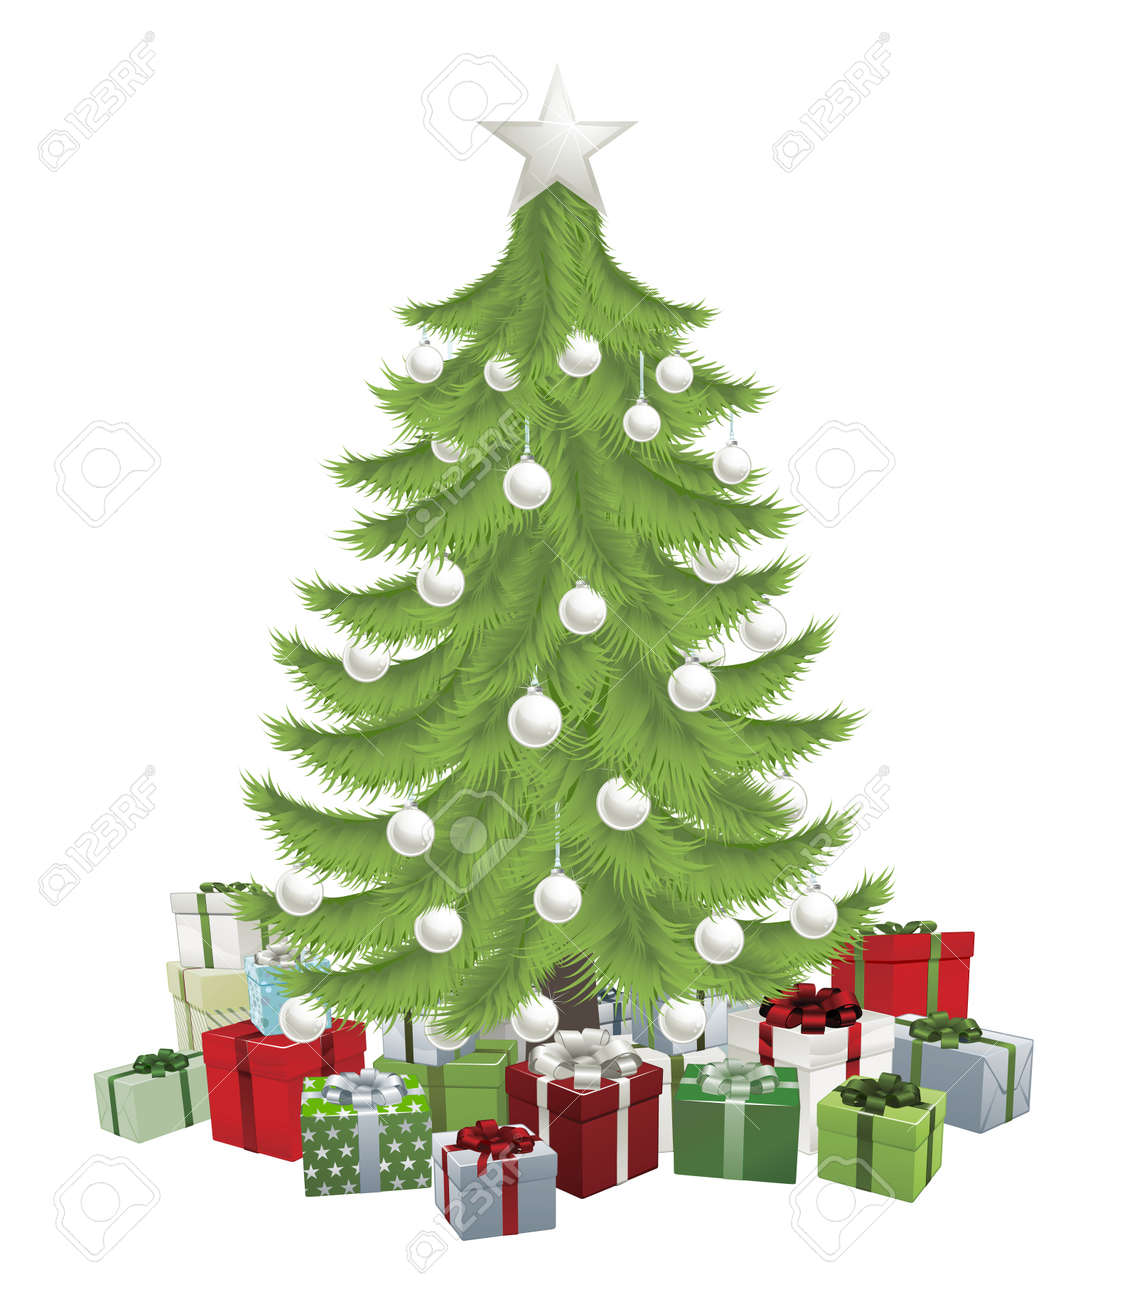 Traditional green Christmas tree with baubles and gifts. Stock Vector - 10737869